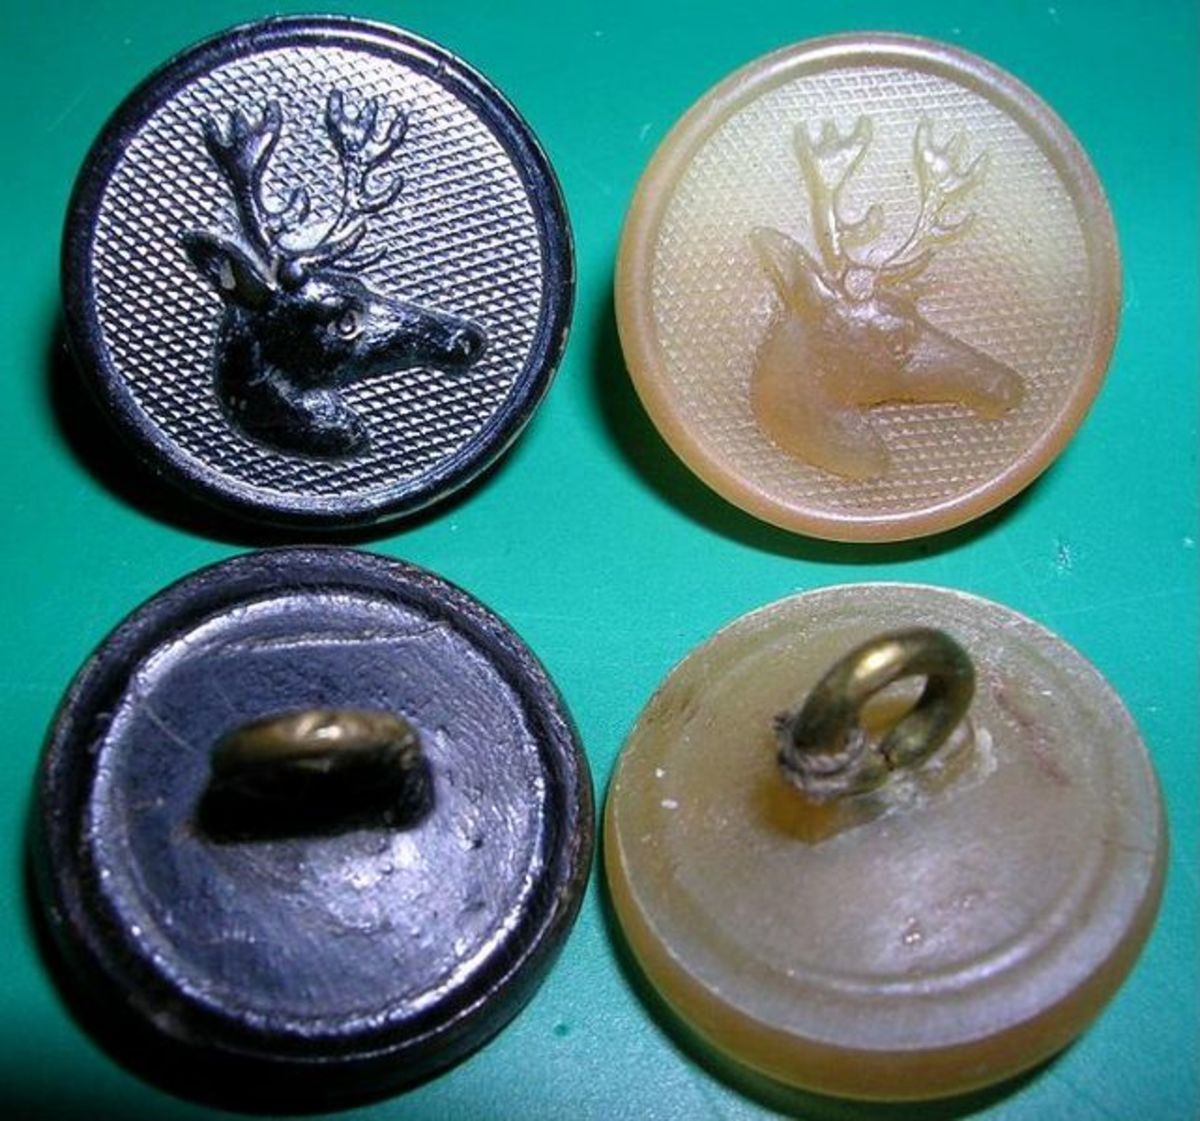 'Hunting' buttons made from horn